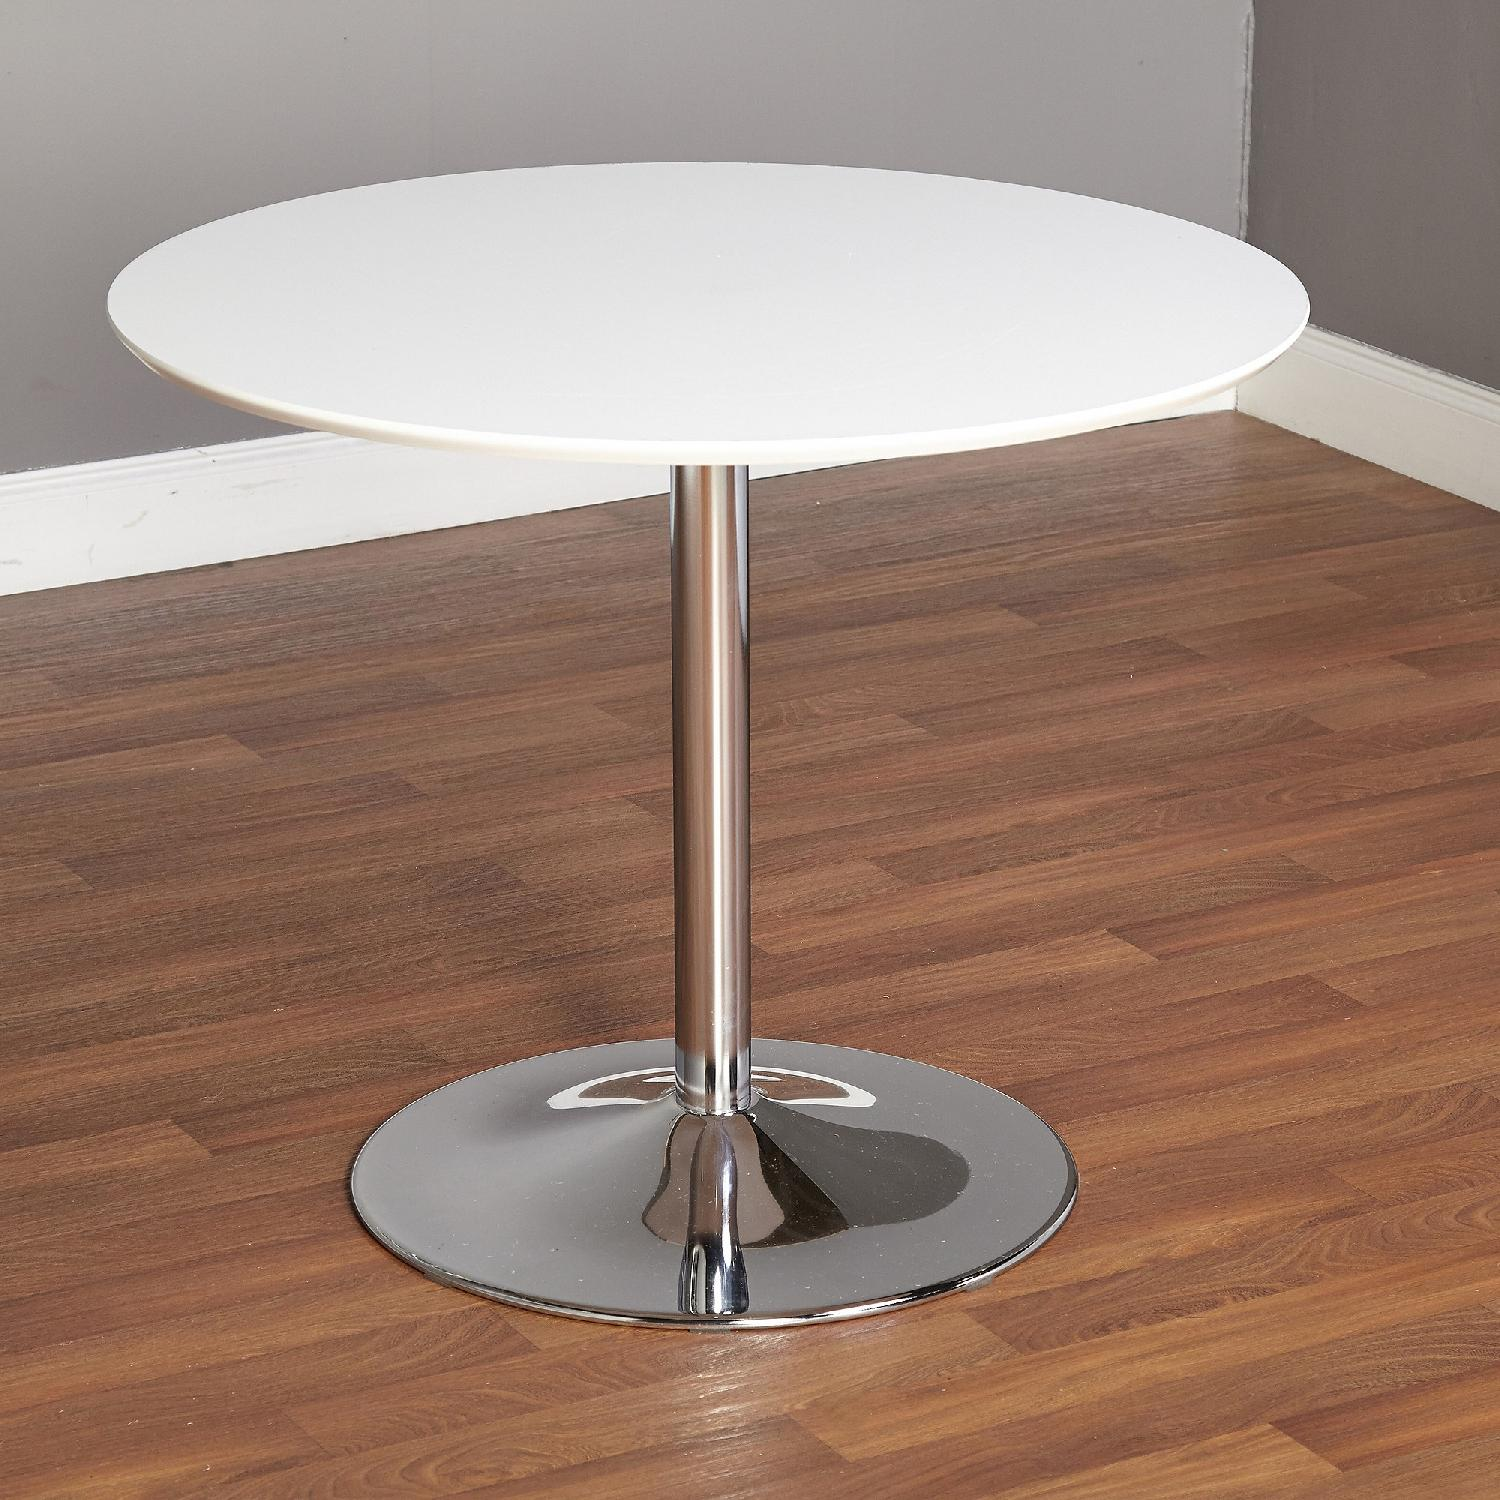 Round White Dining Table - image-7